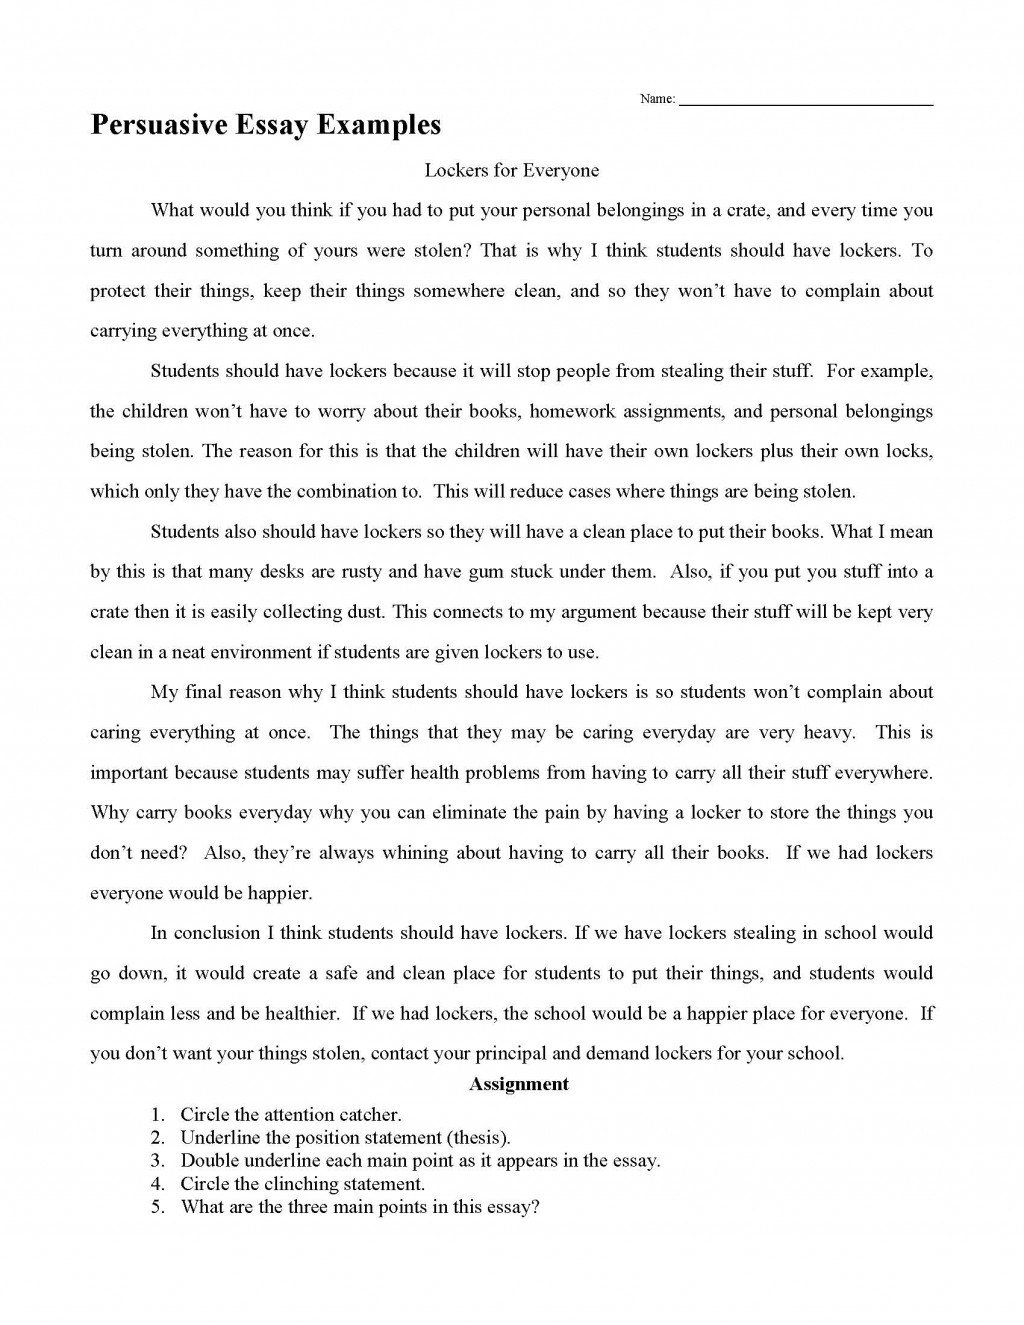 014 Criminal Justice Research Paper Topics Persuasive Essay Examples Fearsome 100 Large